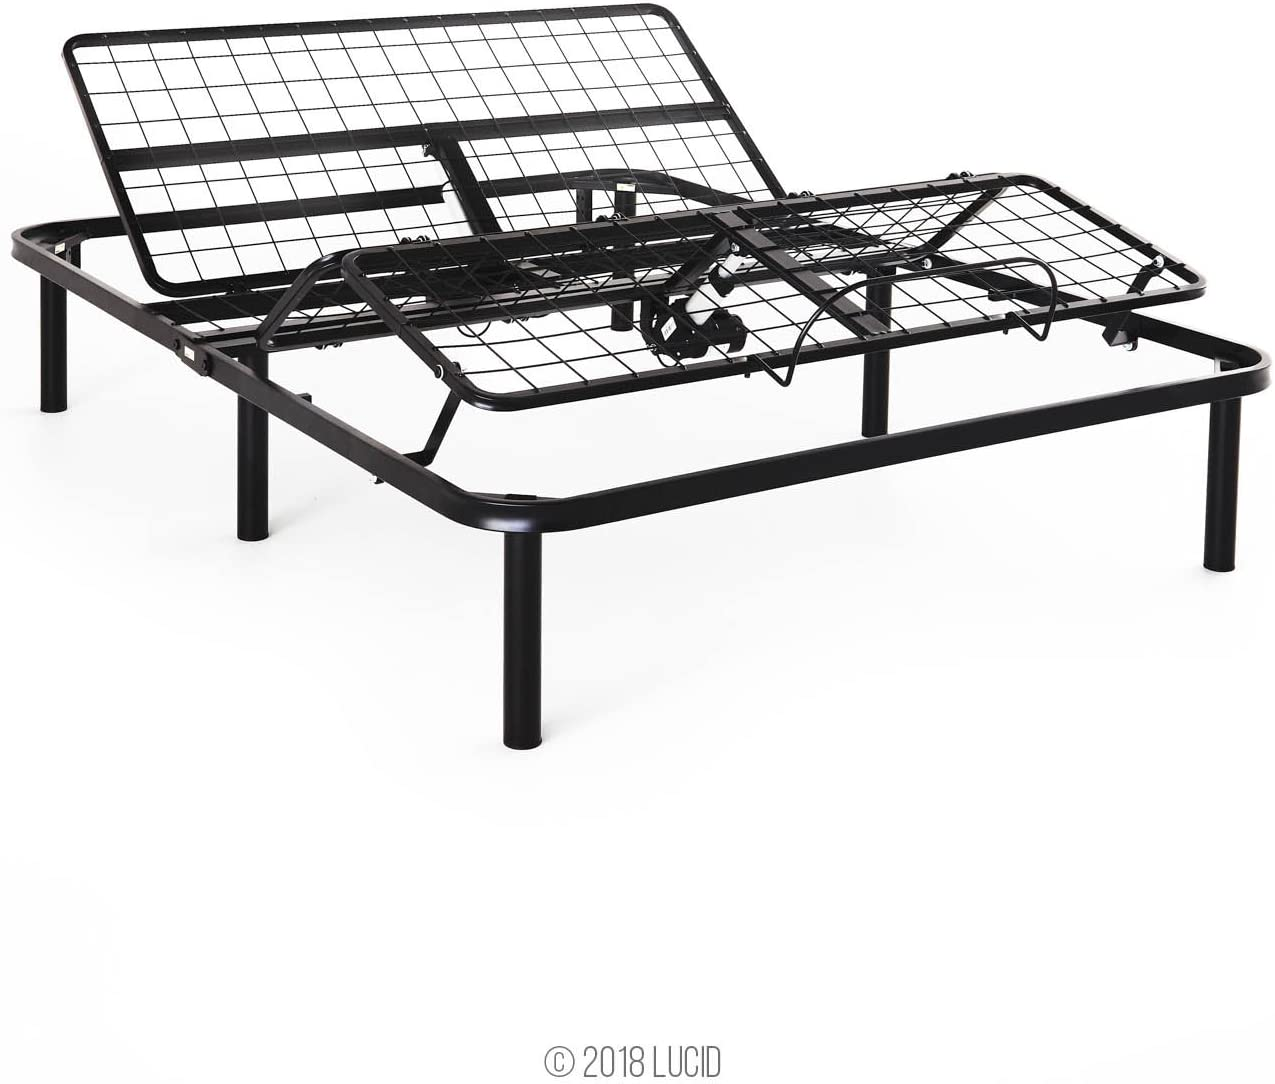 Head and Foot Incline 5 Minute Assembly Wired Remote Control LUCID L100 Adjustable Bed Base Steel Frame Queen